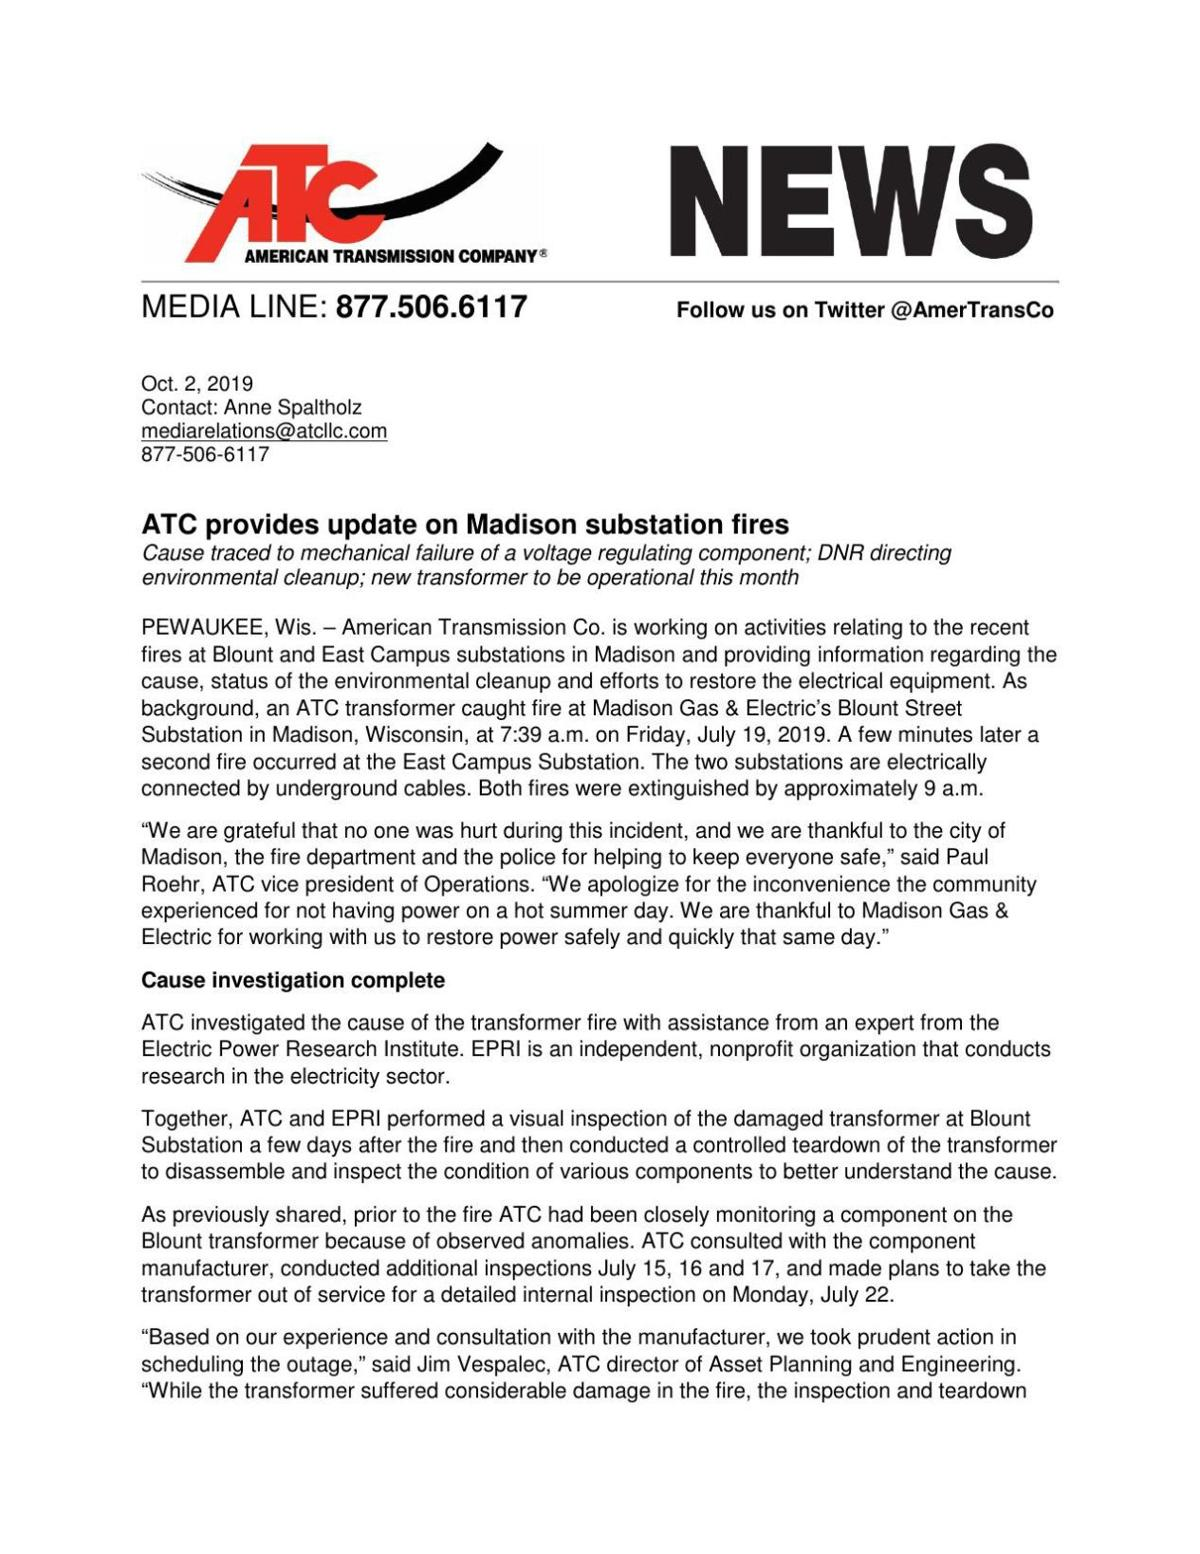 ATC news release 10-2-19